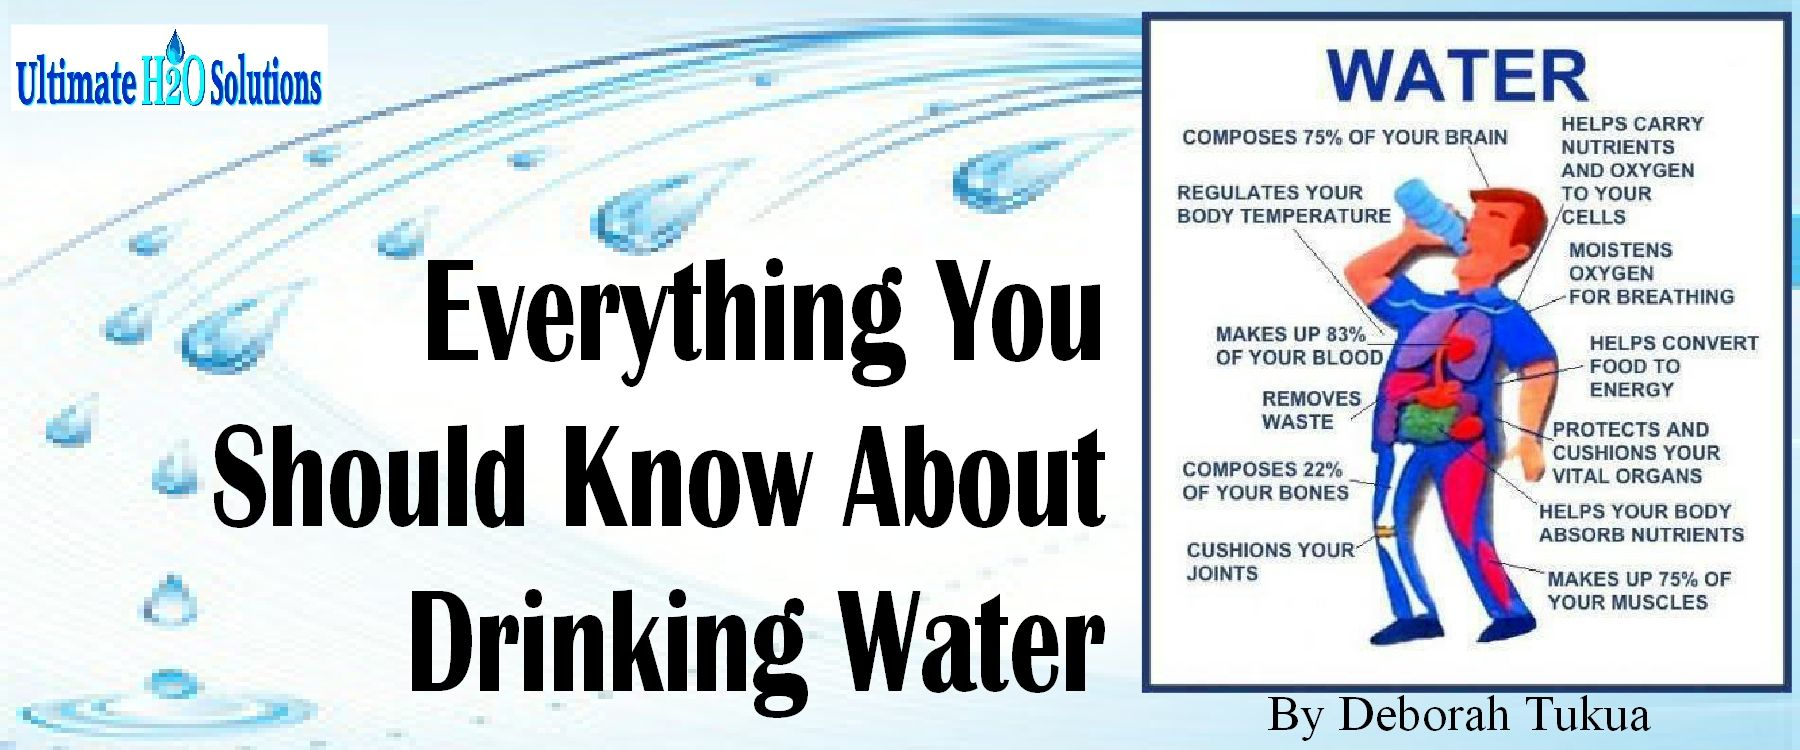 Learn healthy drinking water habits and how you can purify your tap water at work.